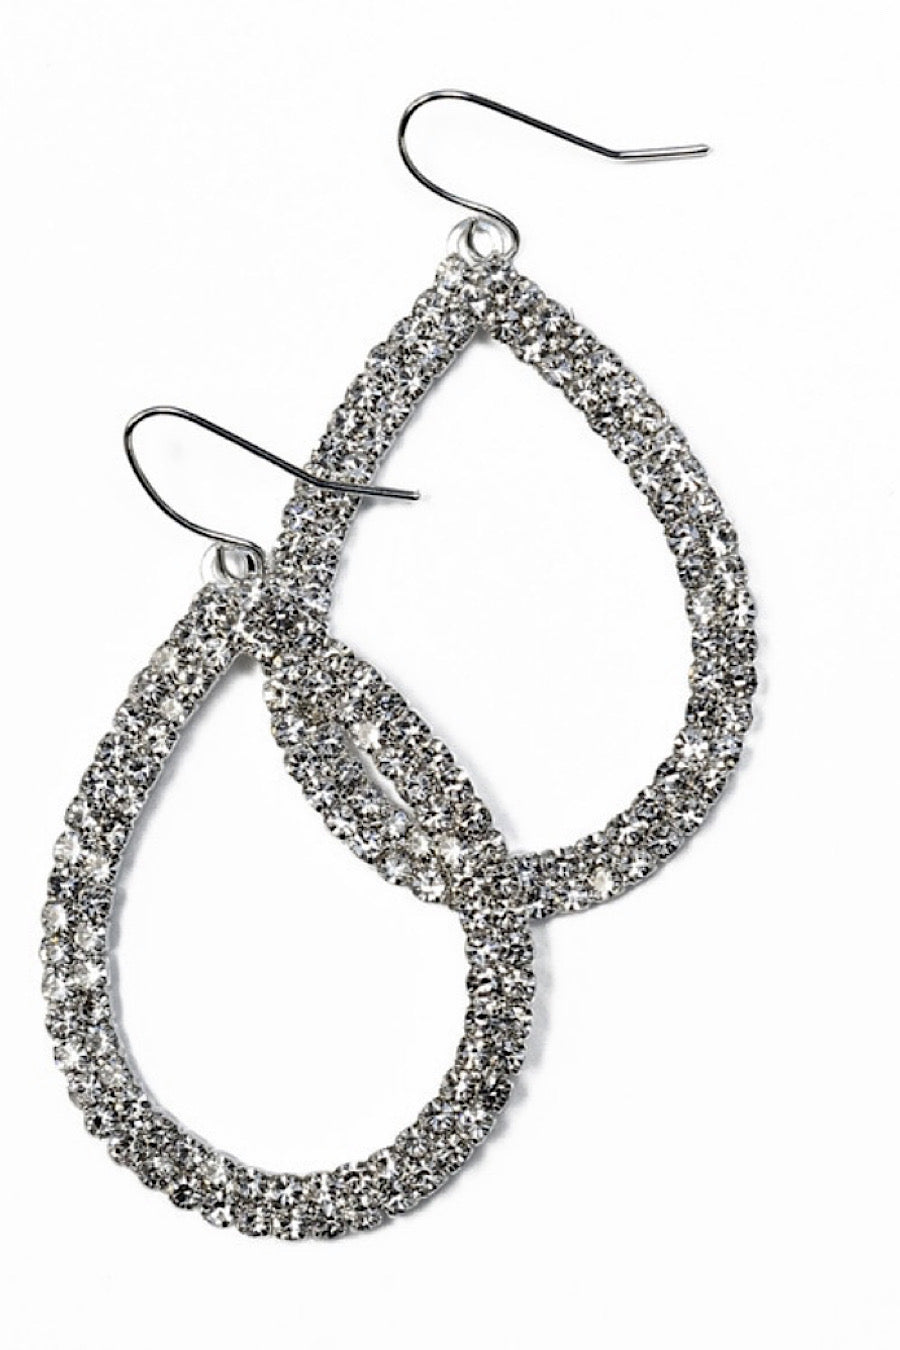 Pear Shape Drop Earrings in Crystal